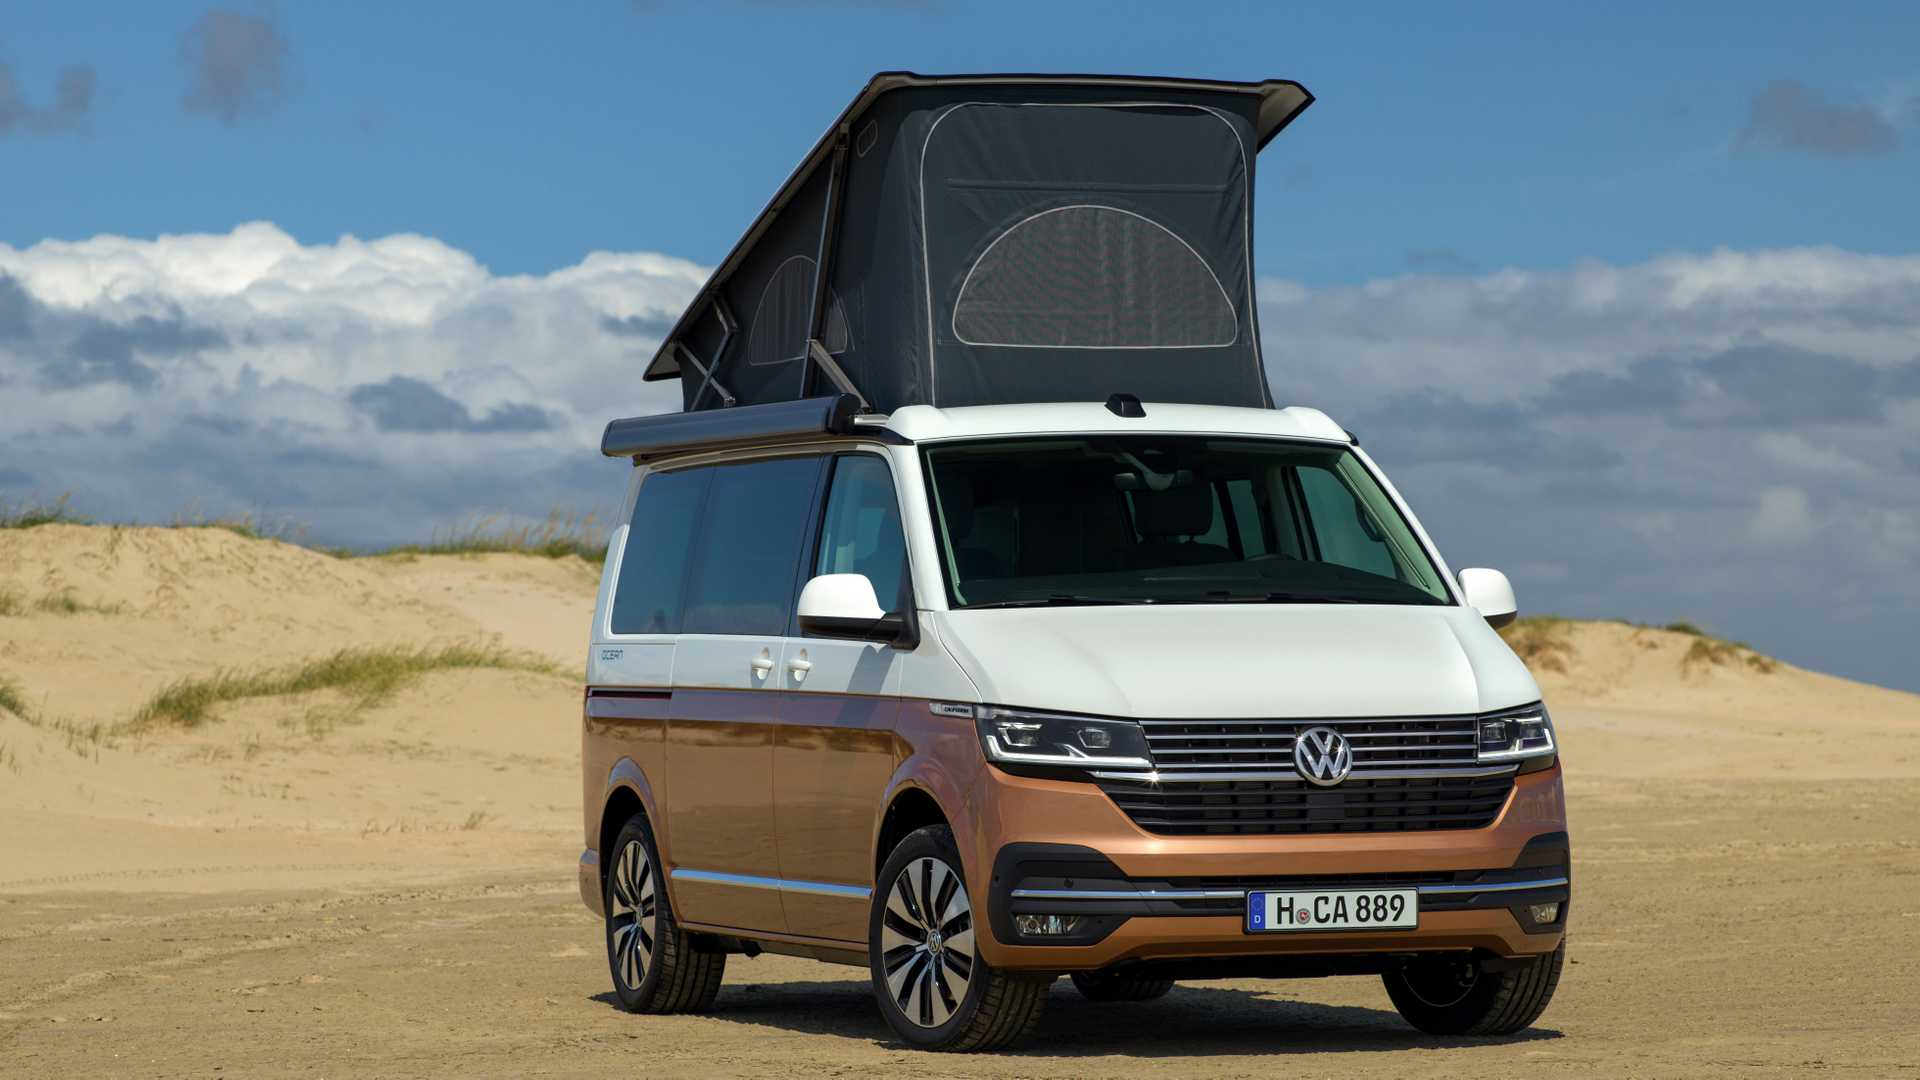 VW California 6 1 Camper Debuts With Revised Styling, More Tech